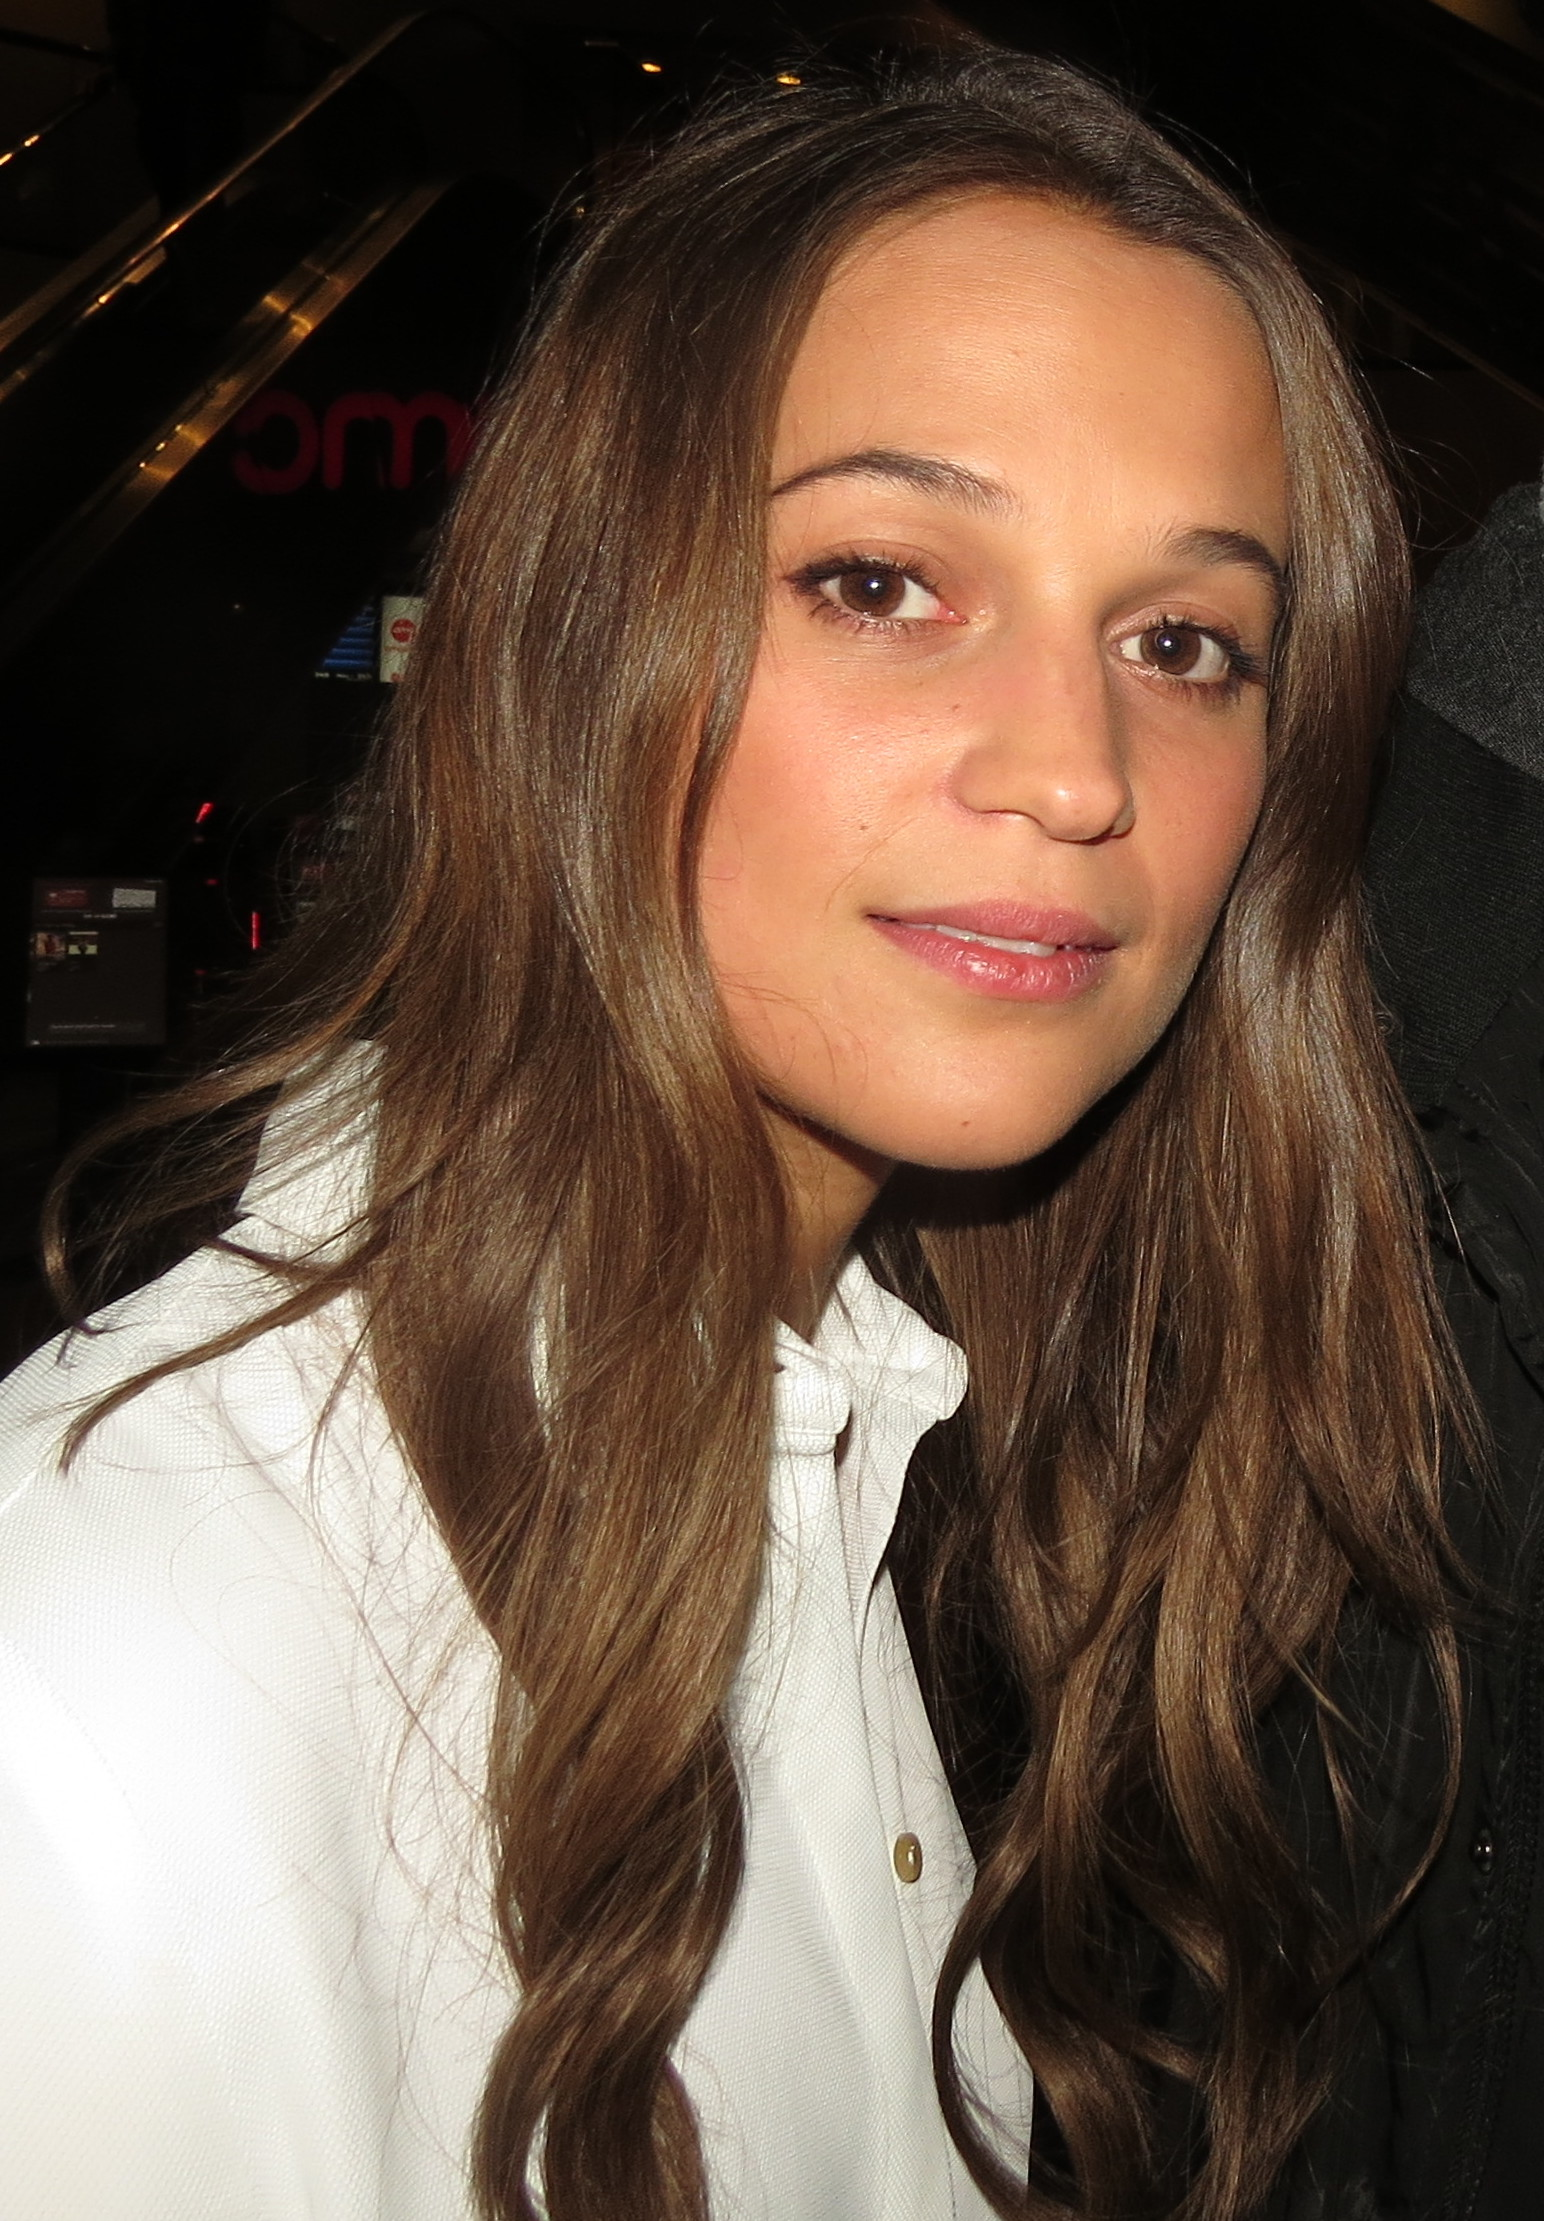 The 30-year old daughter of father Svante Vikander and mother Maria Fahl Vikander Alicia Vikander in 2019 photo. Alicia Vikander earned a  million dollar salary - leaving the net worth at 4 million in 2019